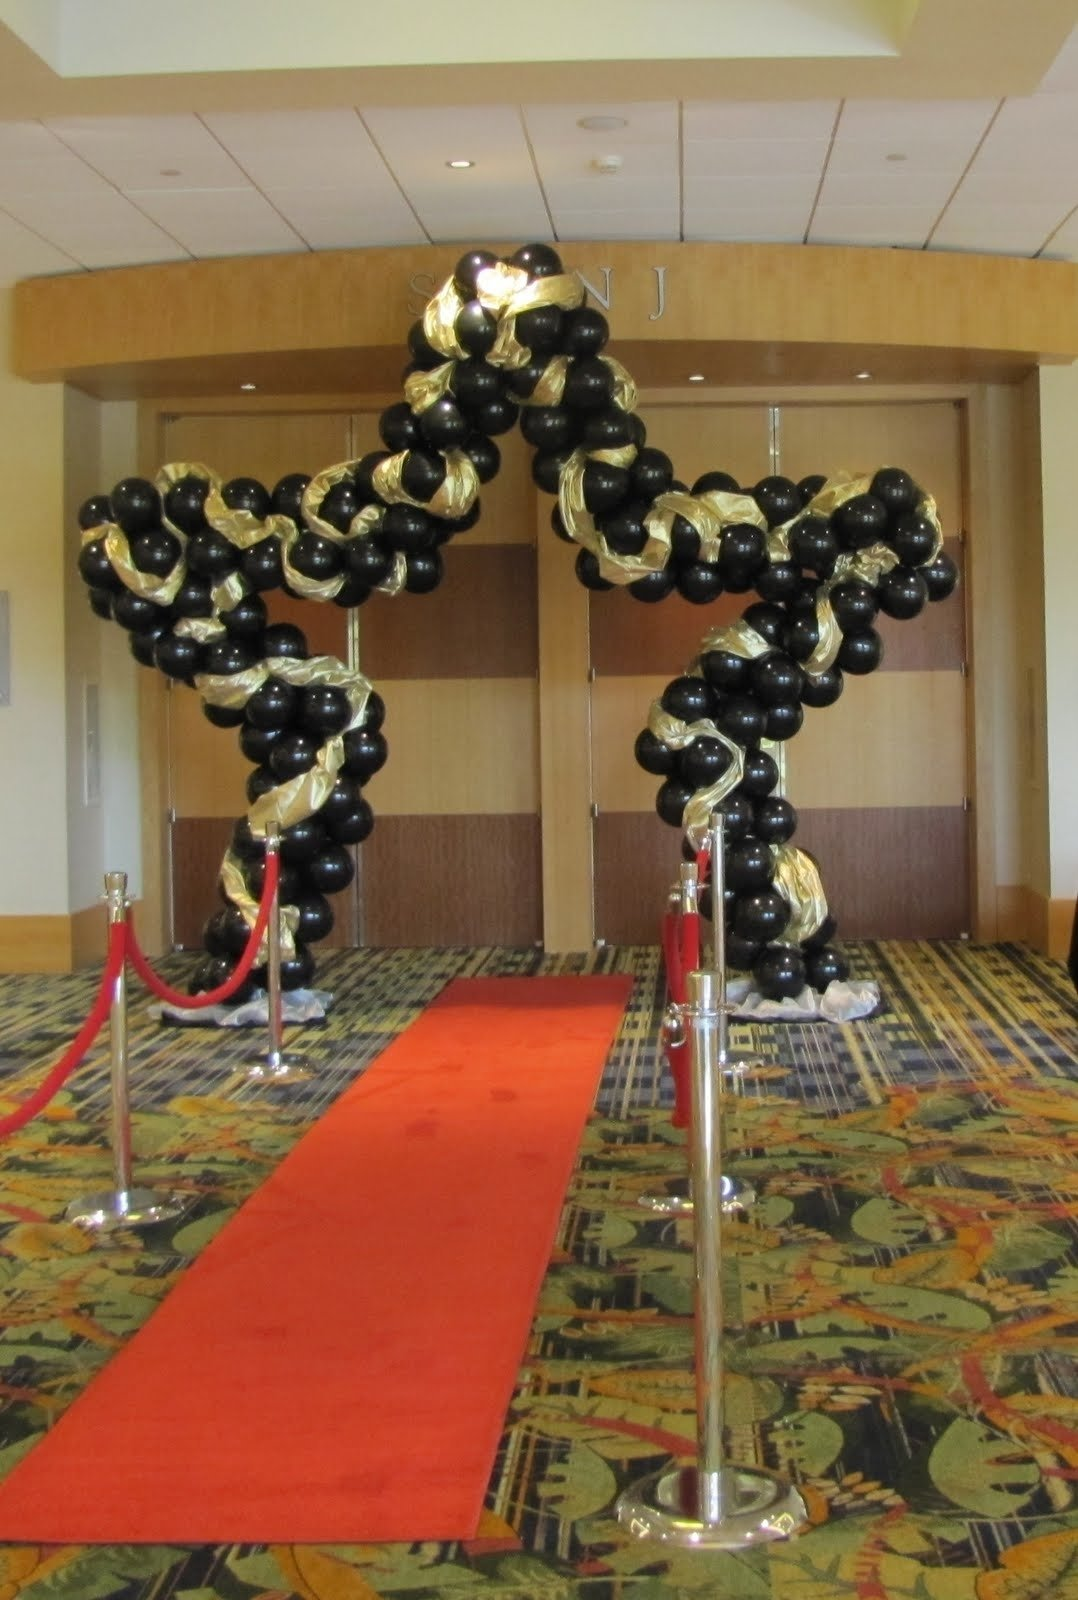 10 Famous Red Carpet Theme Party Ideas beautiful red carpet theme party costume ideas nytexas 2021